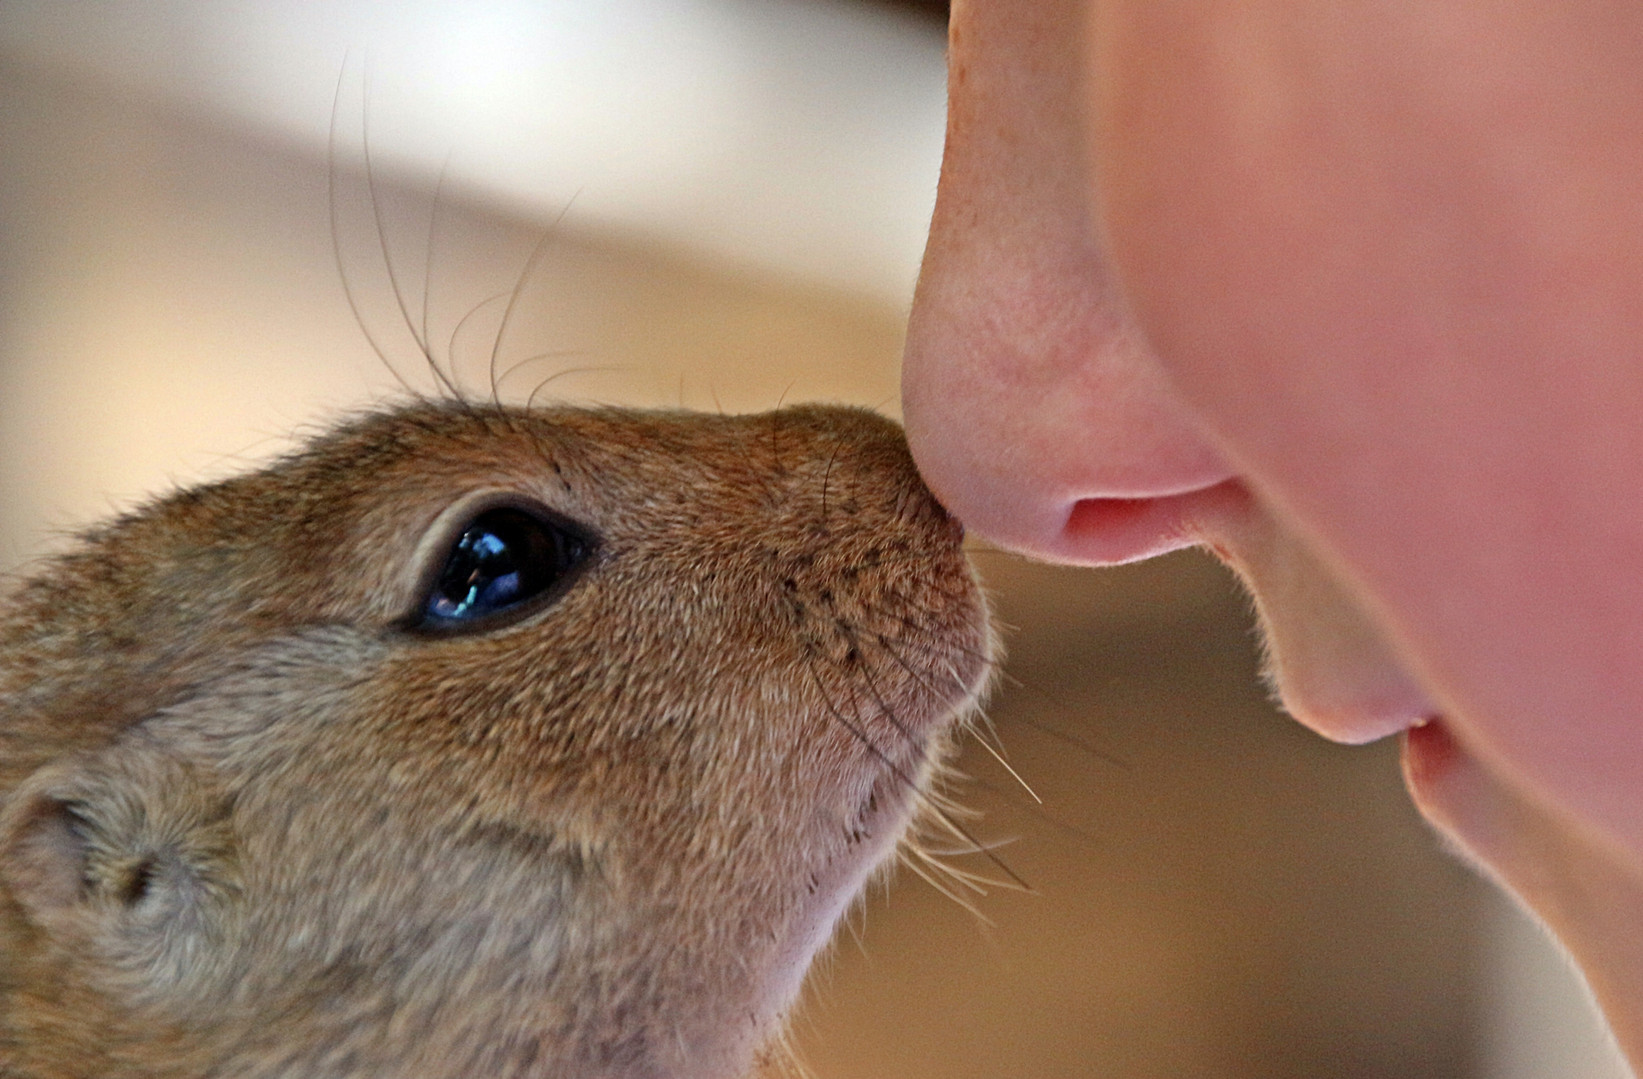 Rat and human kissing noses